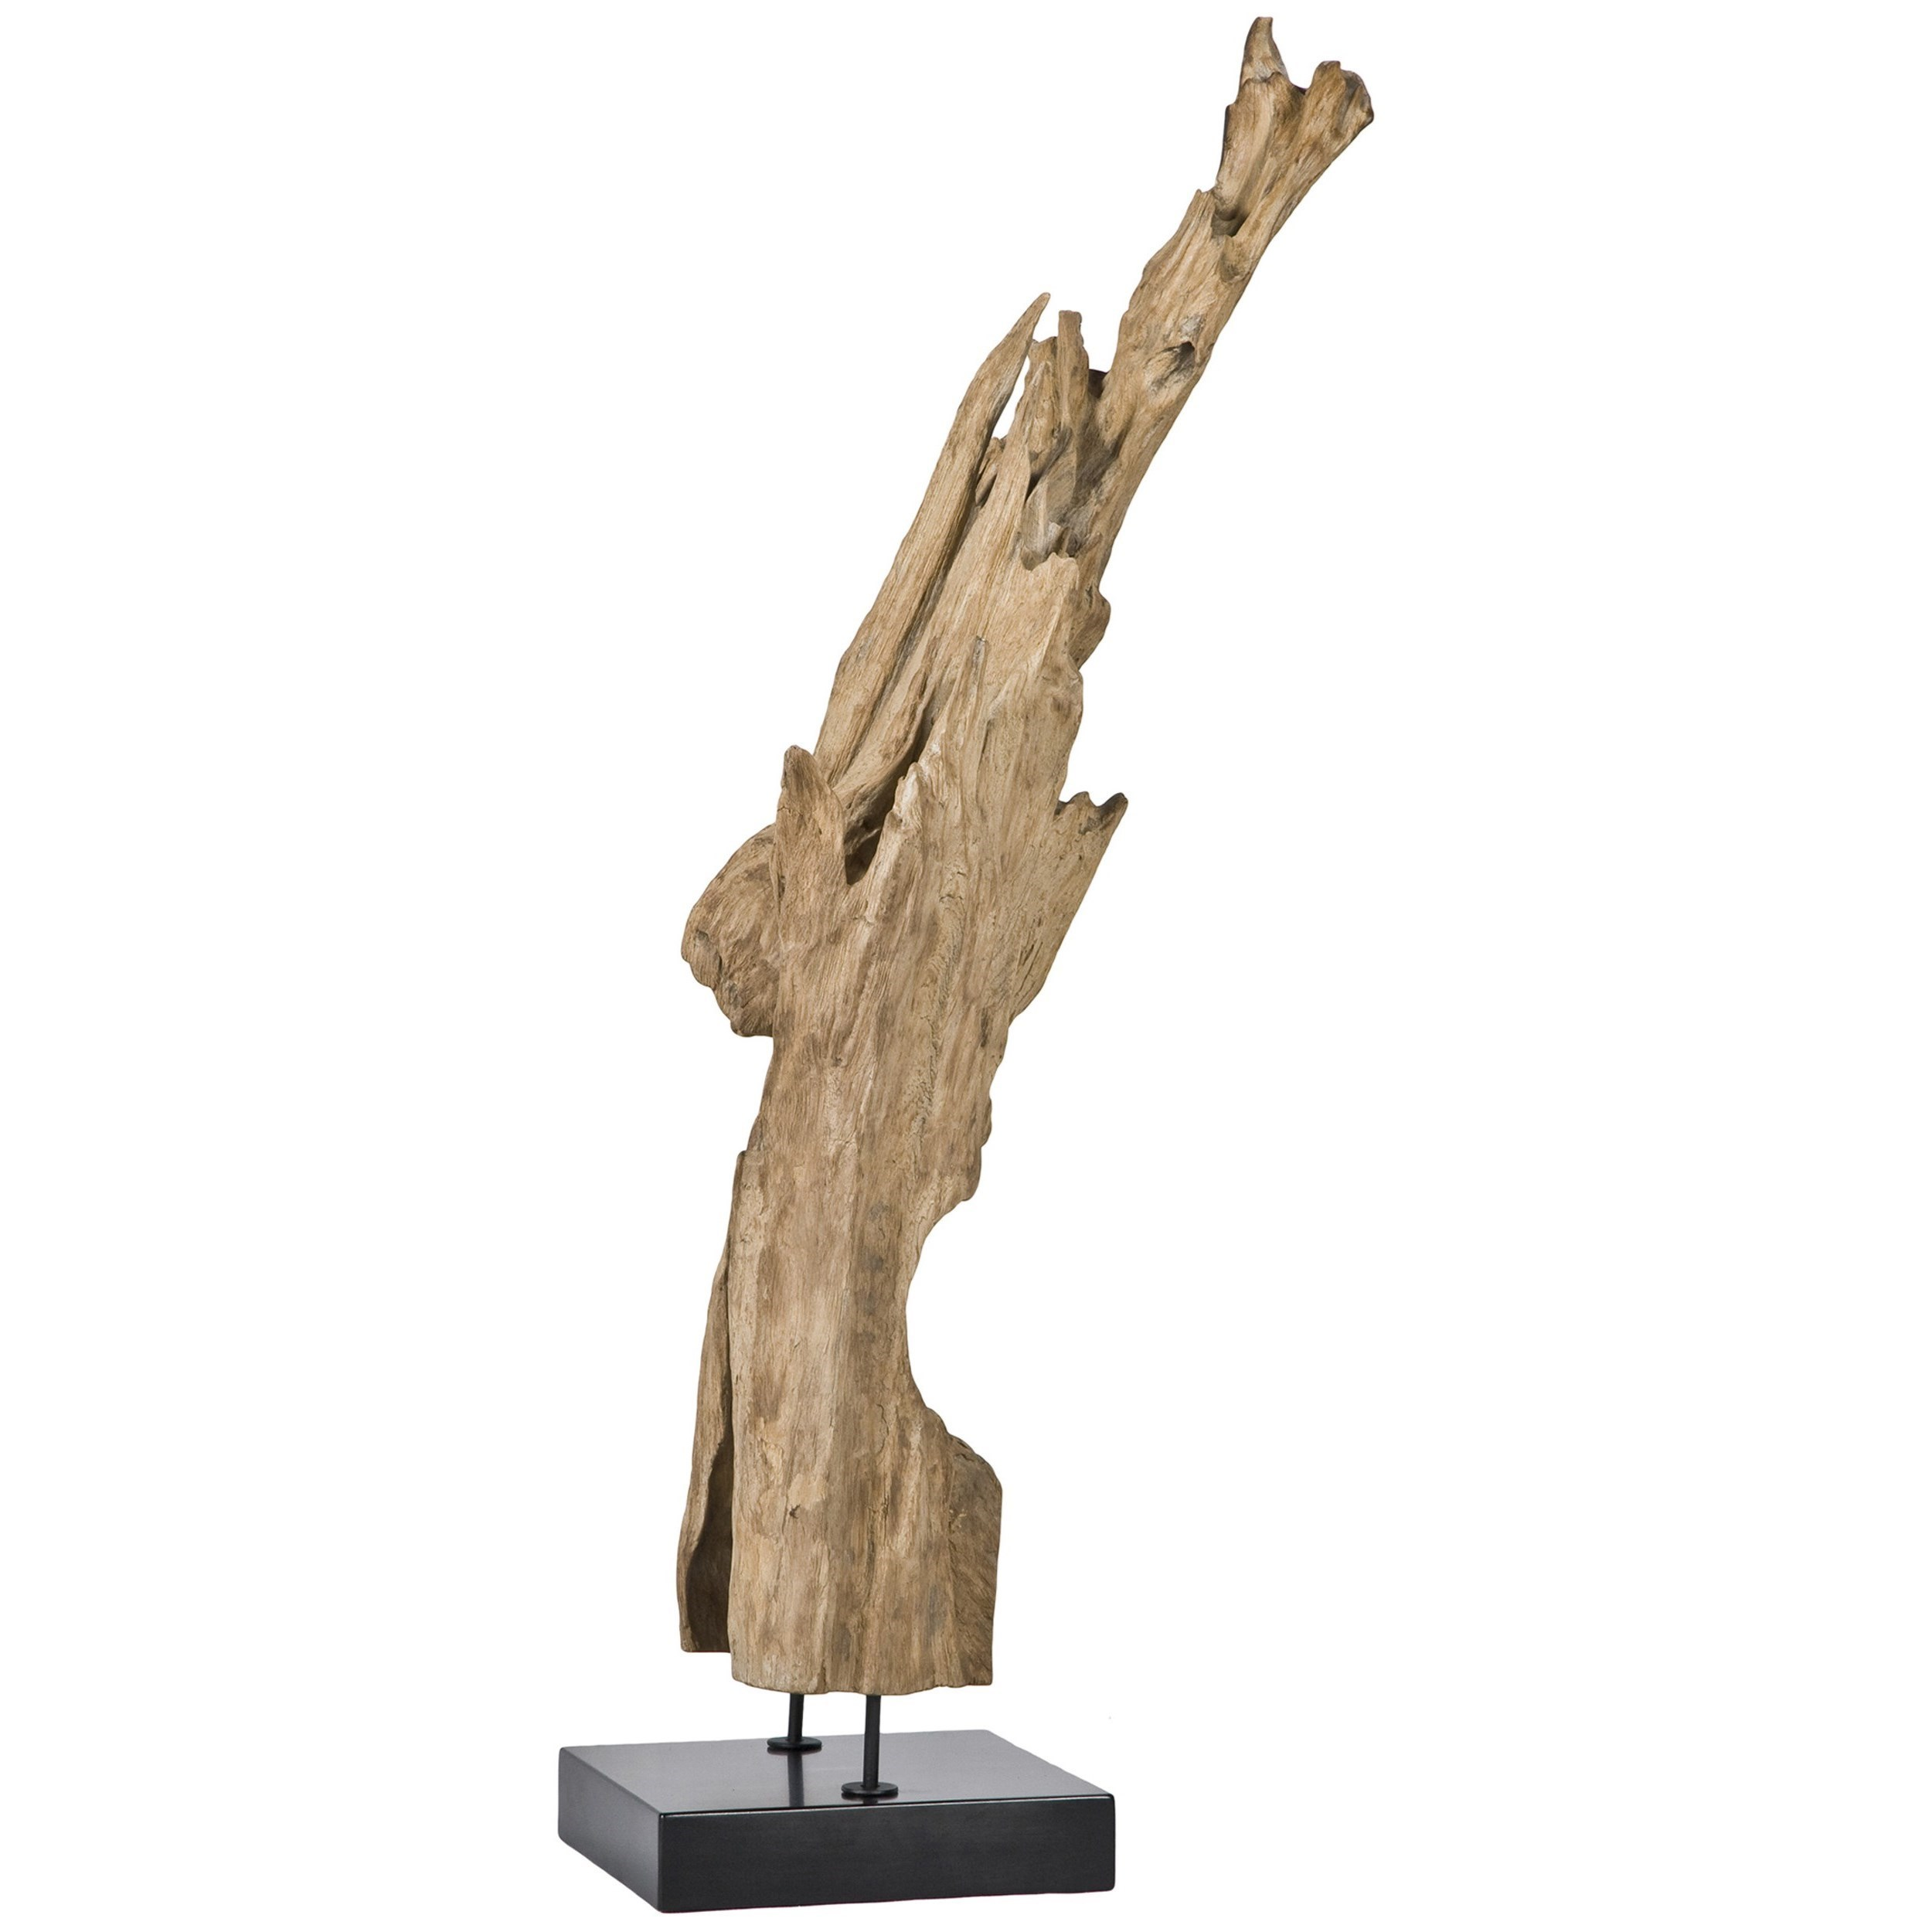 Decorative Accessories Natural Teak Wood Sculpture On Black Marble Stand By  Moeu0027s Home Collection